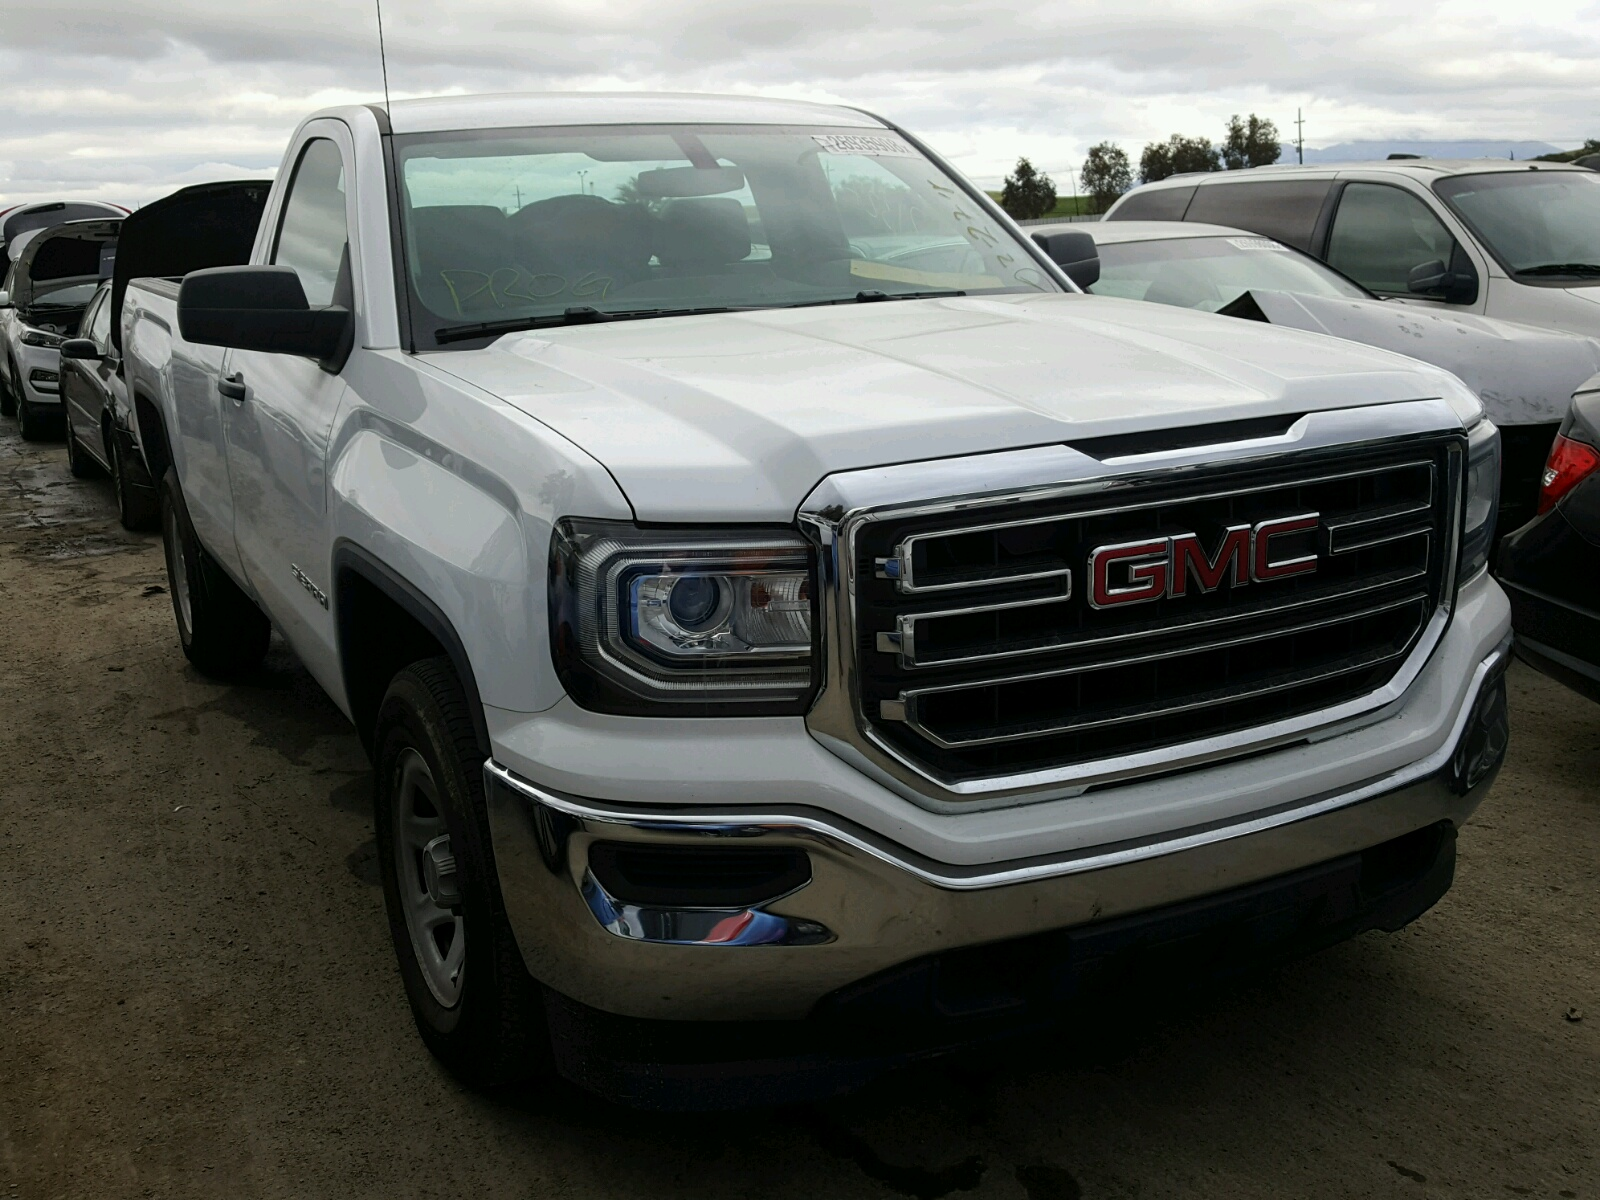 sale vehicles vehiclesearchresults owned sierra pickup vehicle in pre gmc photo tappahannock for va